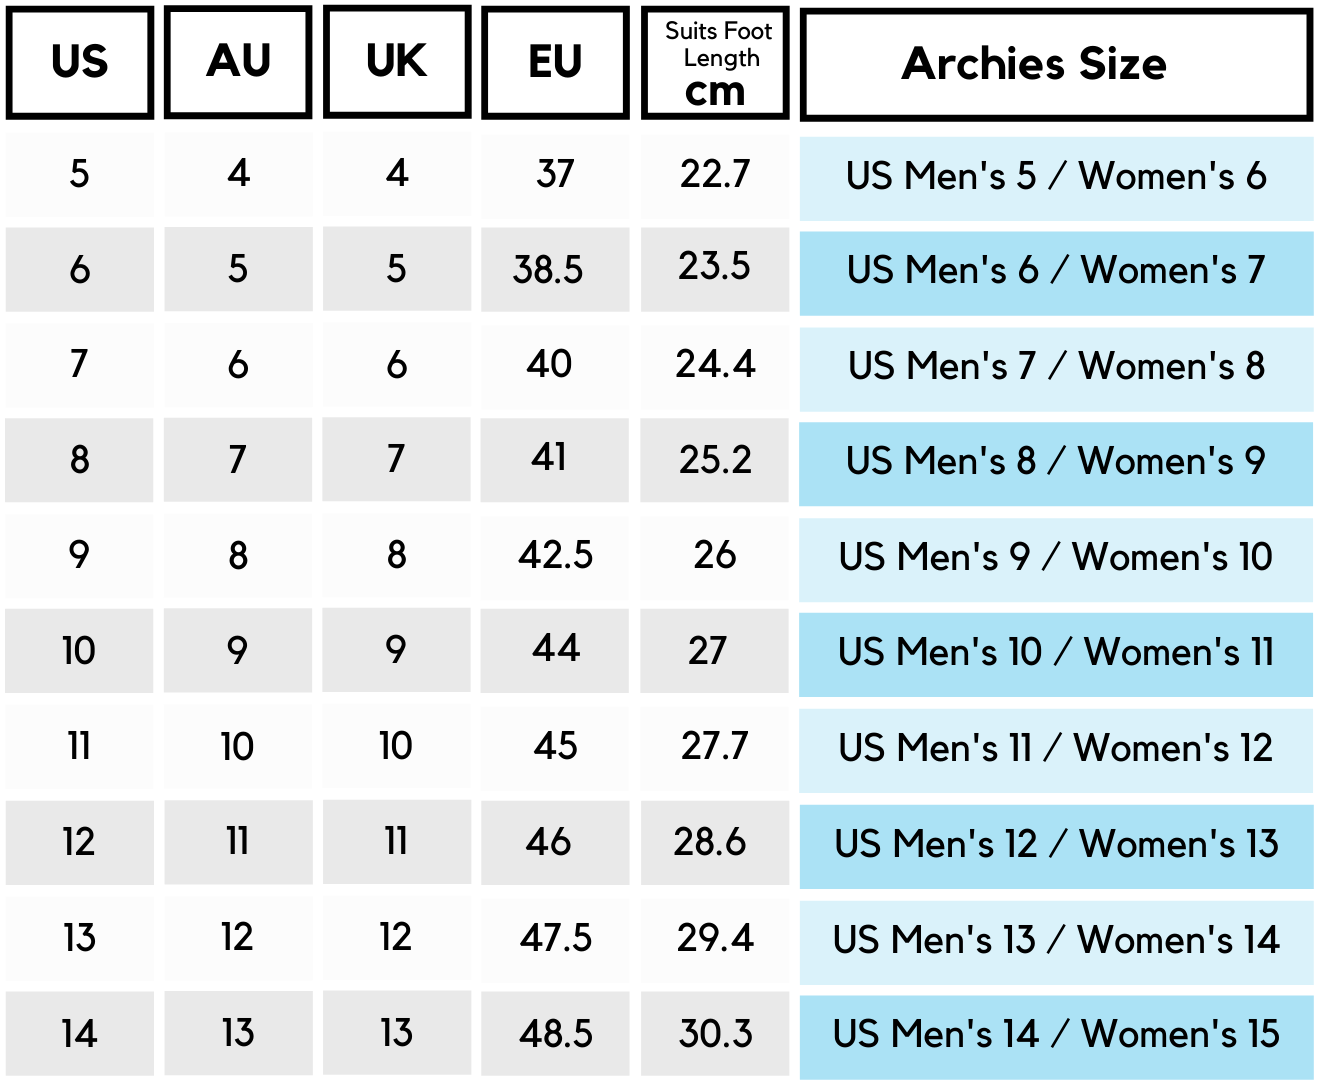 AU Men's Size Guide